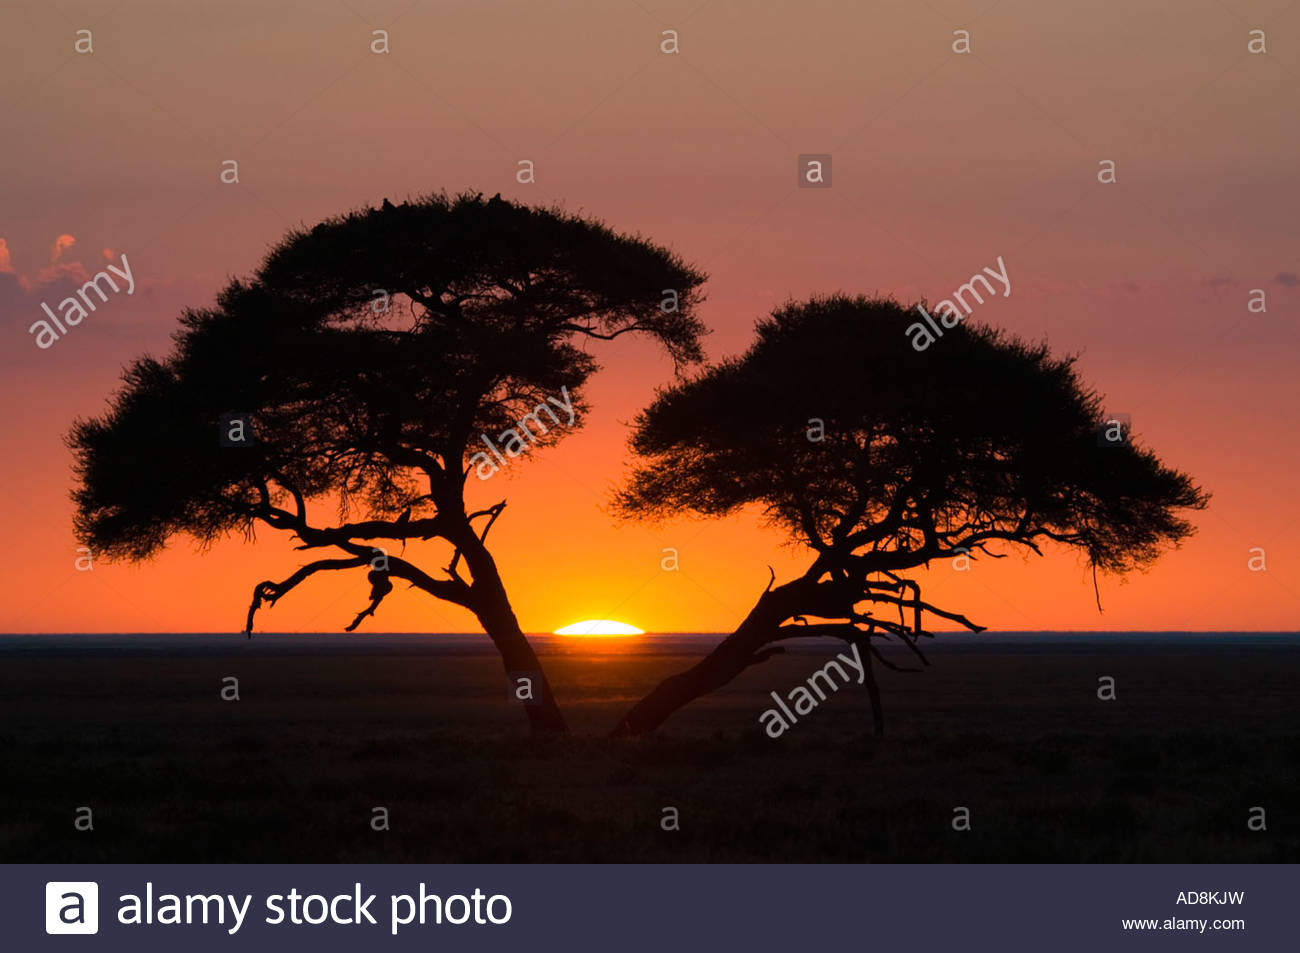 African sunrise with acacia trees in silhouette. Etosha National Park, Namibia, Africa - Stock Image